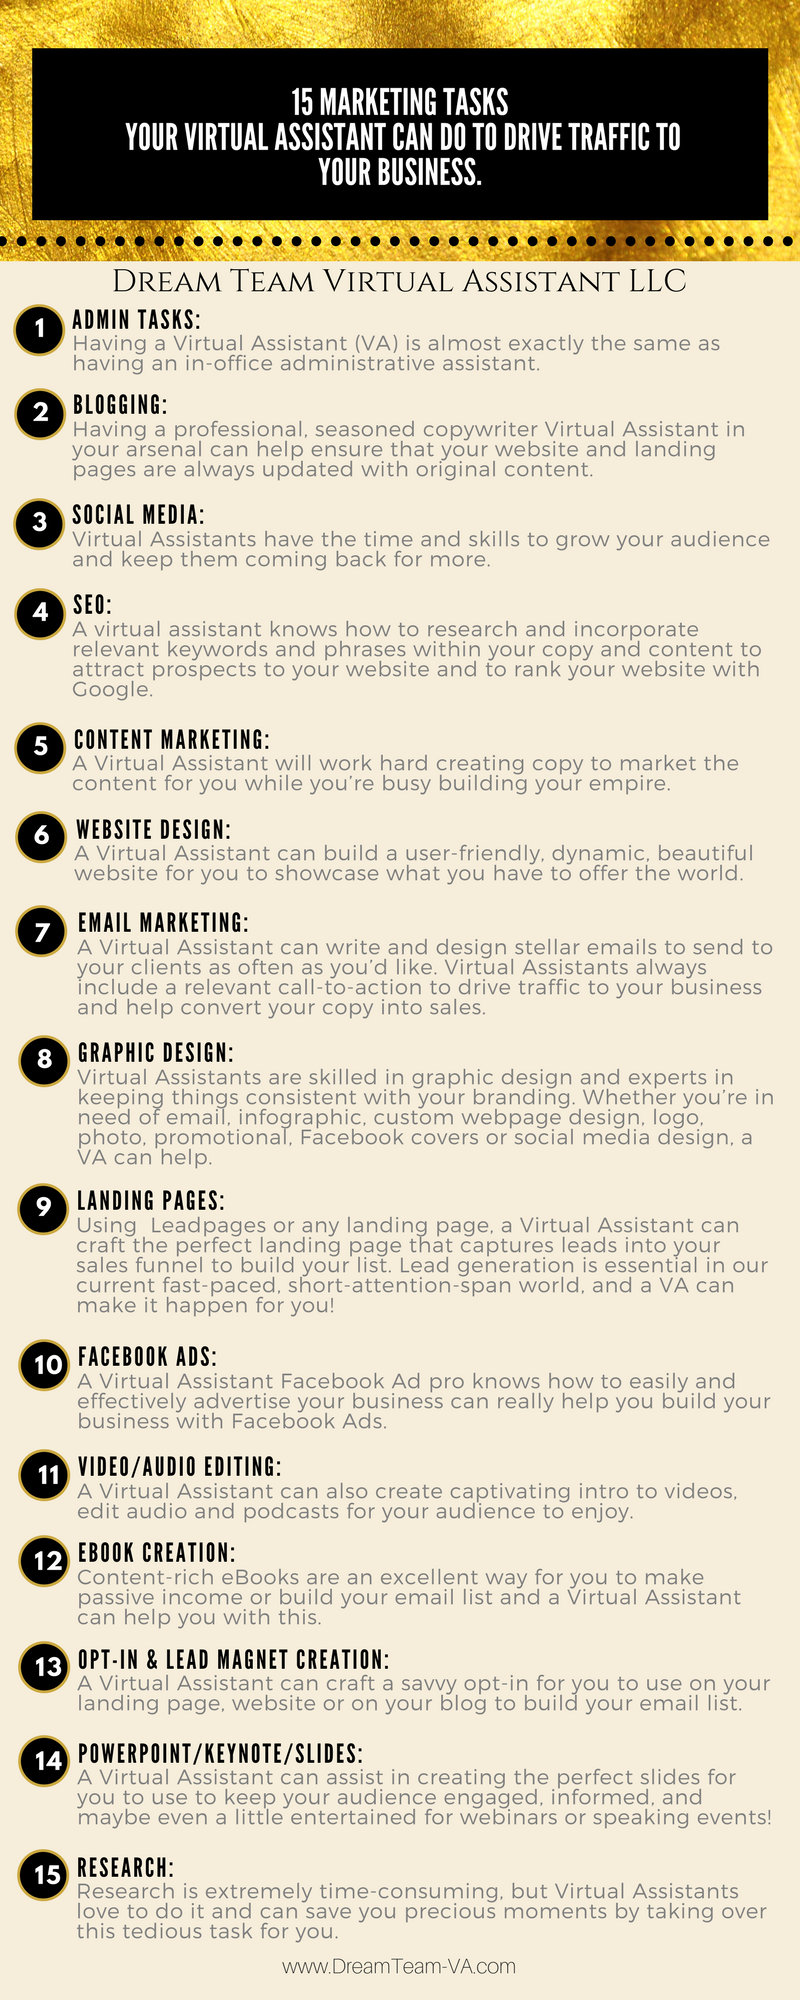 15 MARKETING TASKS YOUR VIRTUAL ASSISTANT CAN DO TO DRIVE TRAFFIC TO YOUR BUSINESS..jpg